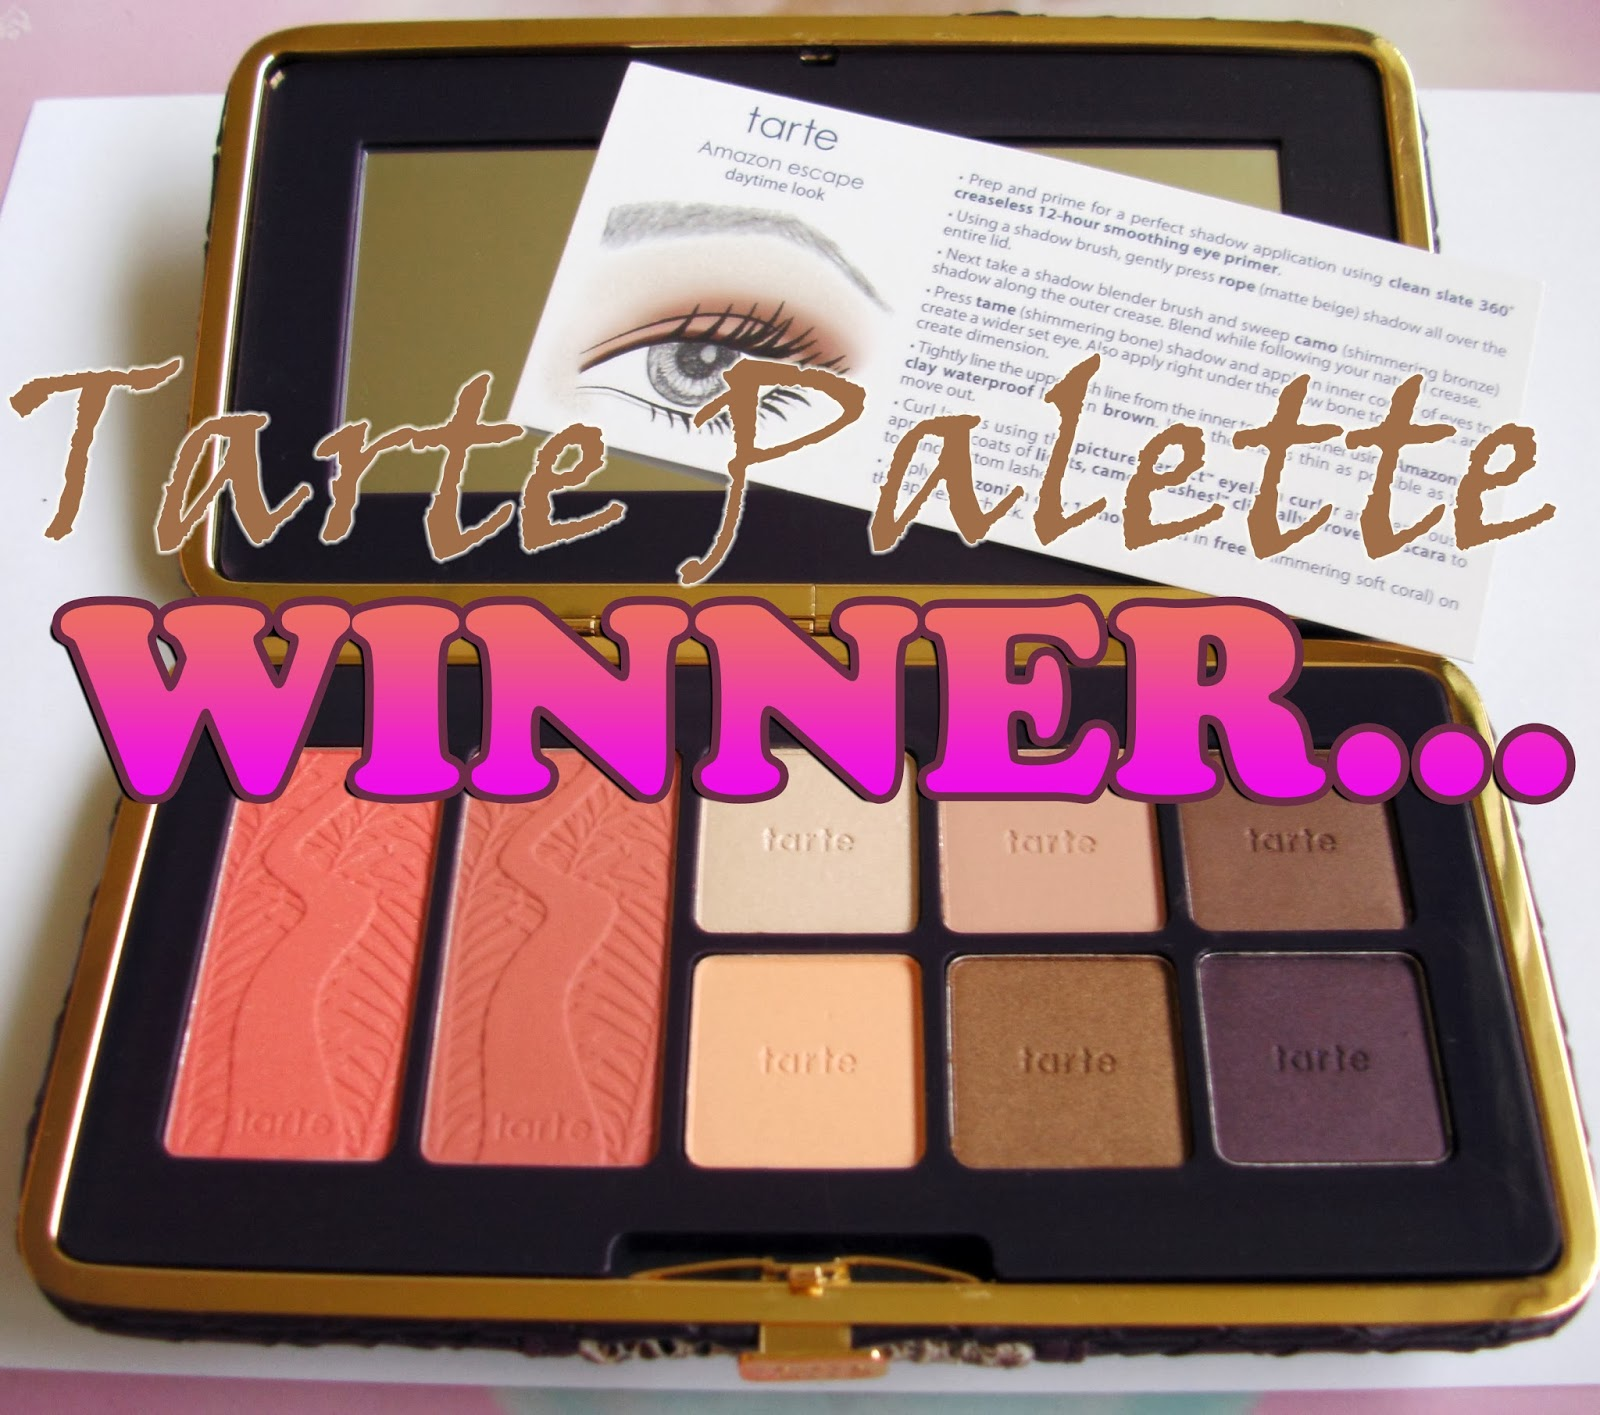 Tarte Amazonian Clay Eye & Cheek Palette Winner